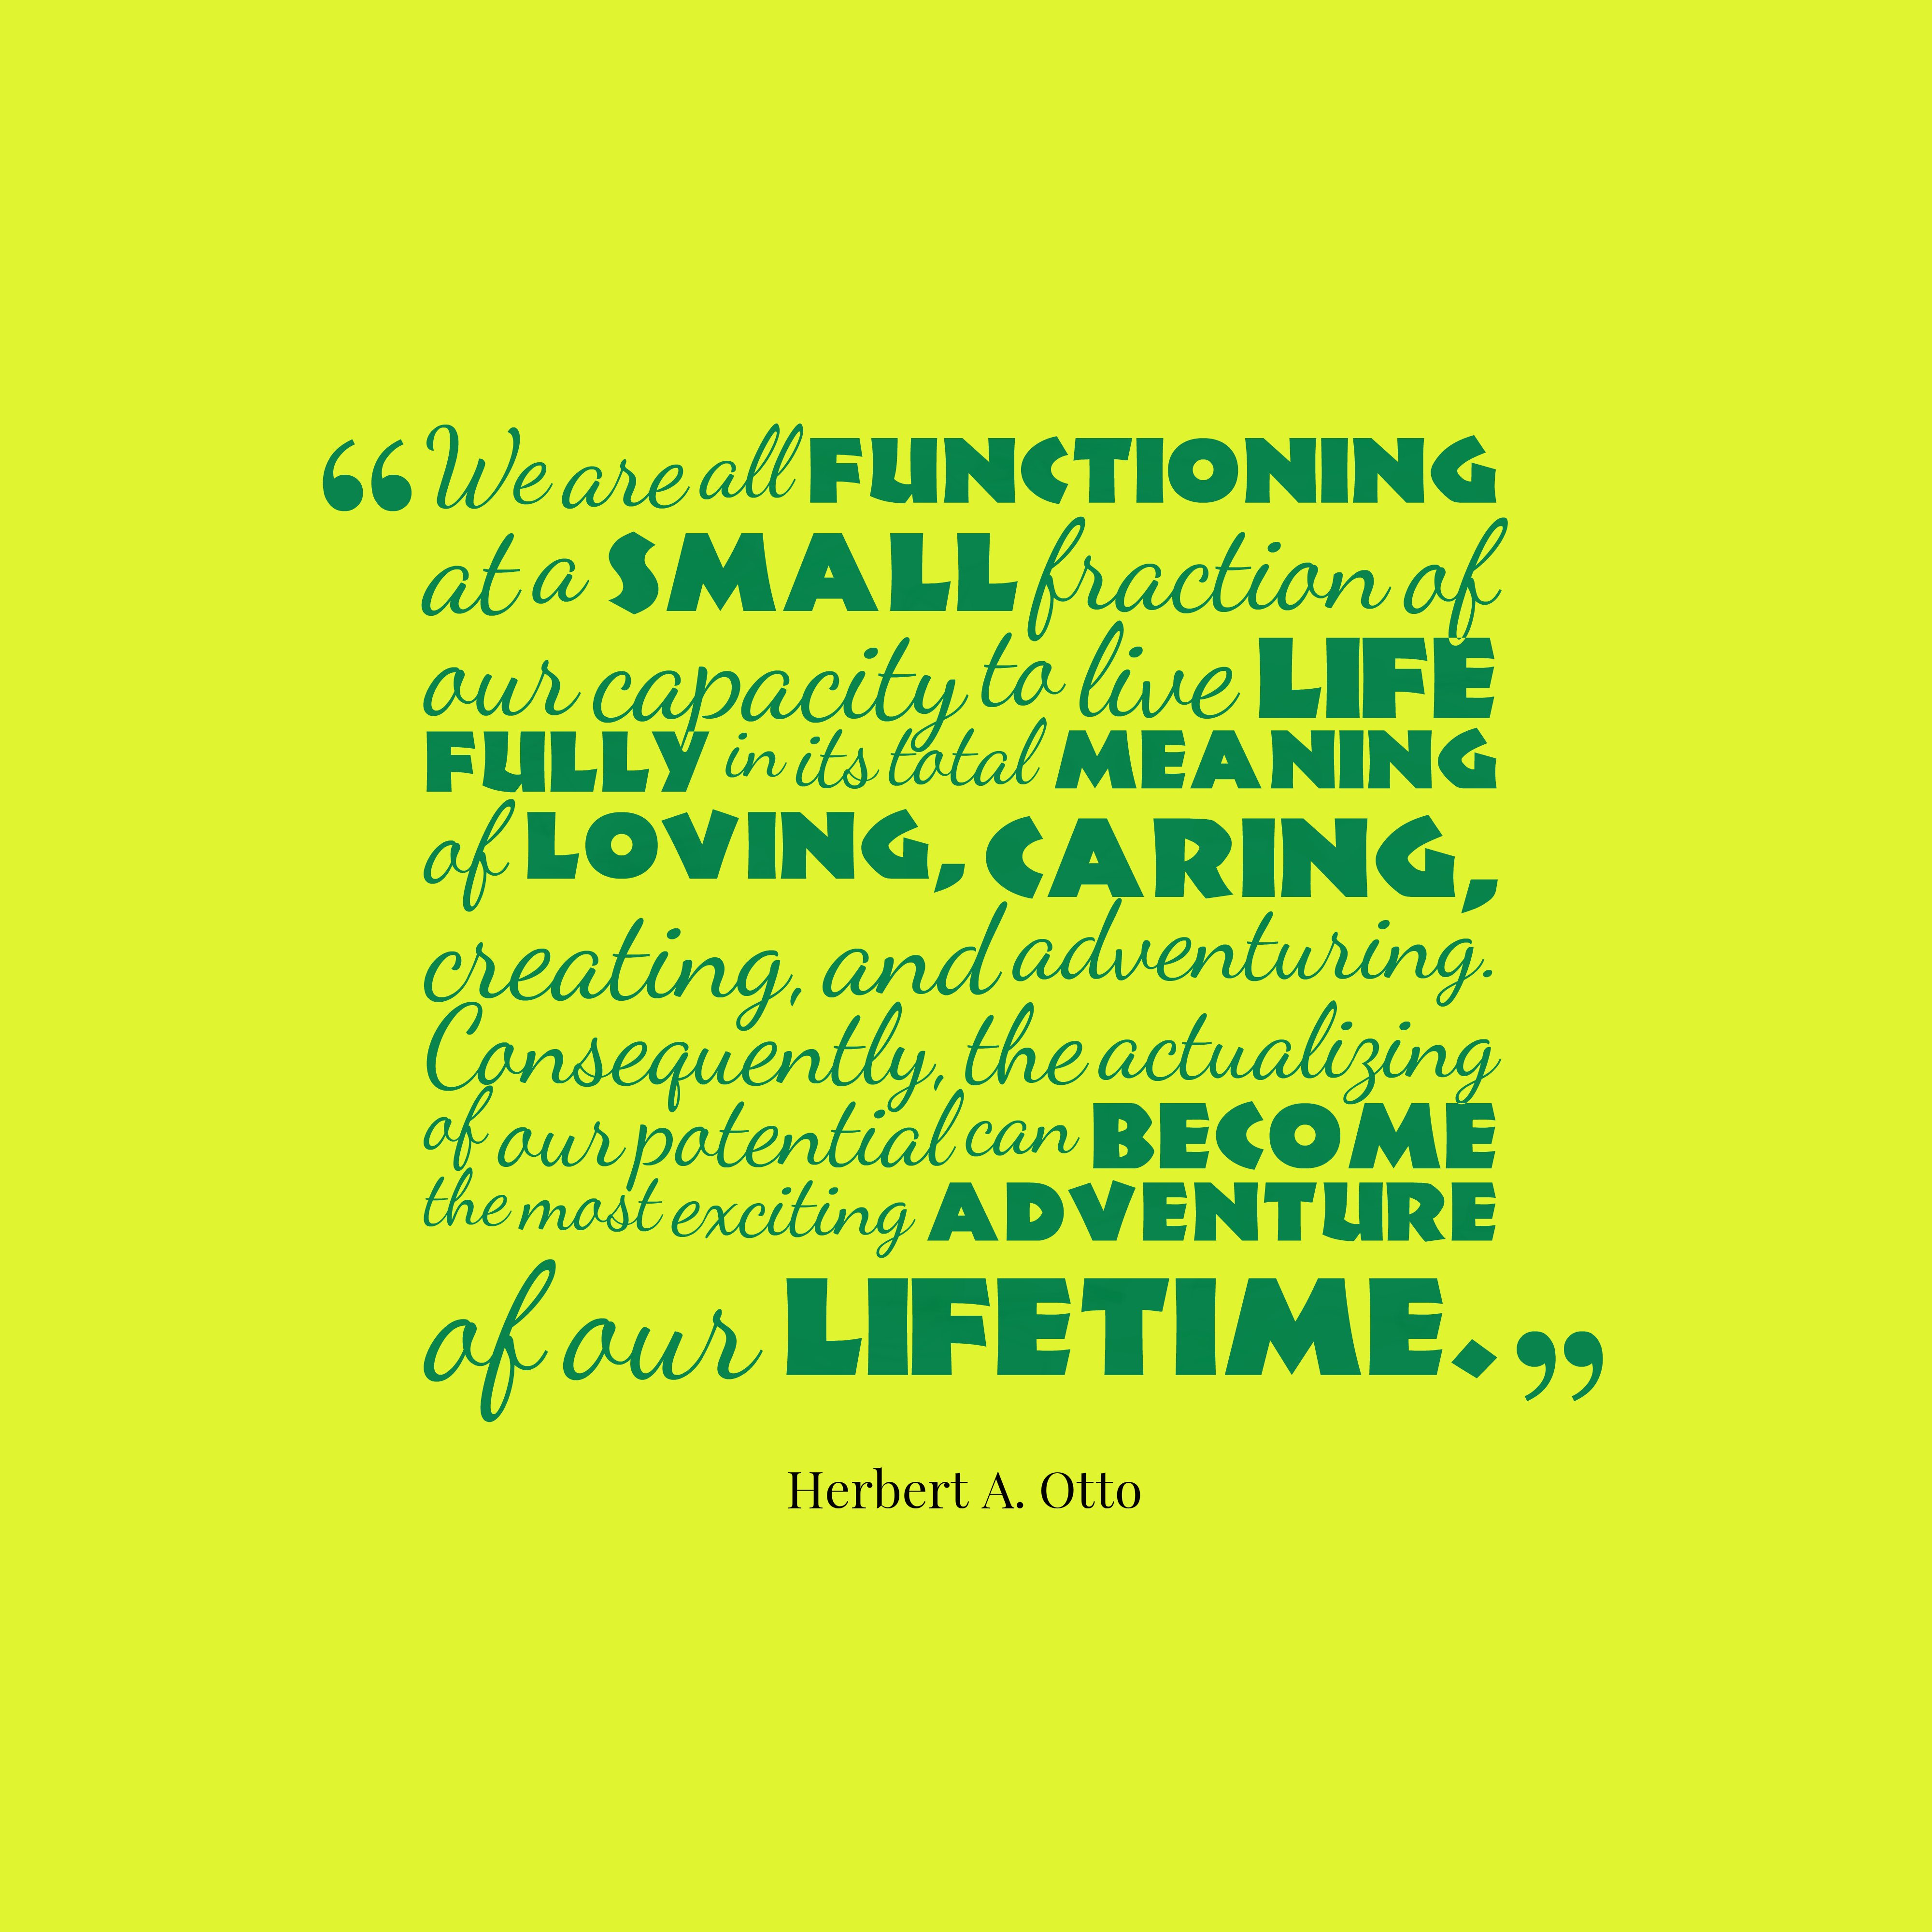 Quotes image of We are all functioning at a small fraction of our capacity to live life fully in its total meaning of loving, caring, creating, and adventuring. Consequently, the actualizing of our potential can become the most exciting adventure of our lifetime.